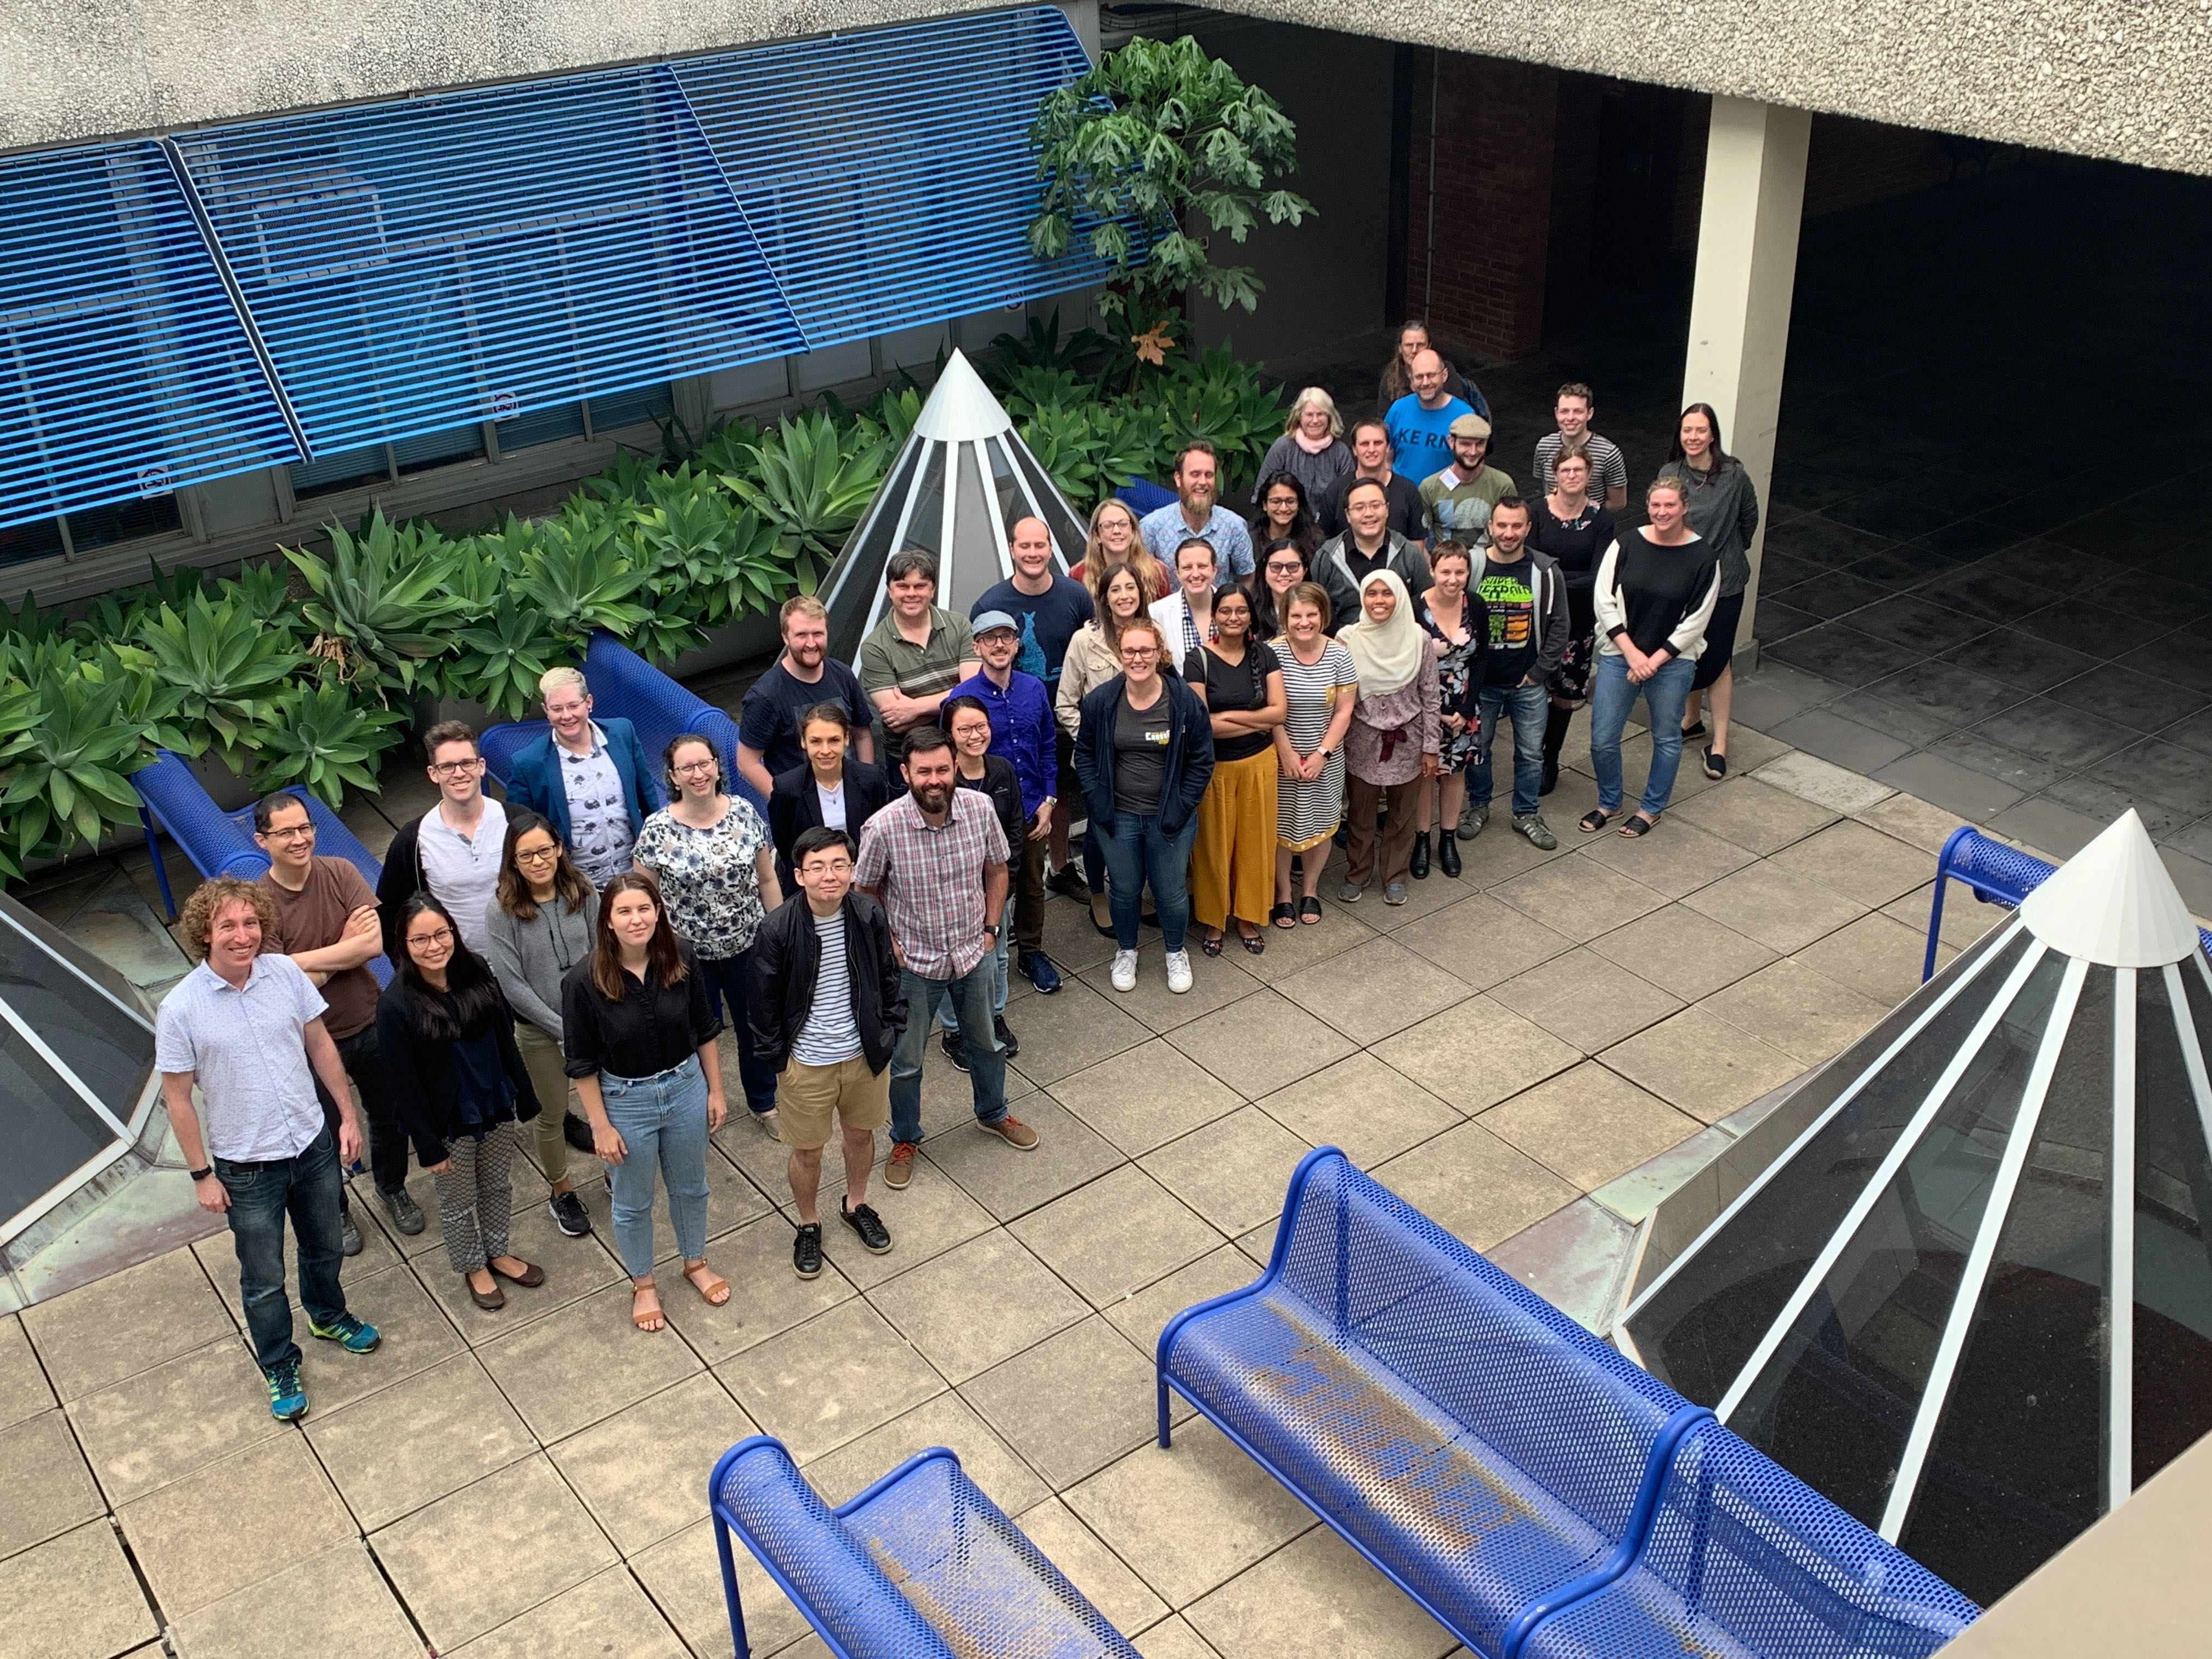 group photo of 40 participants